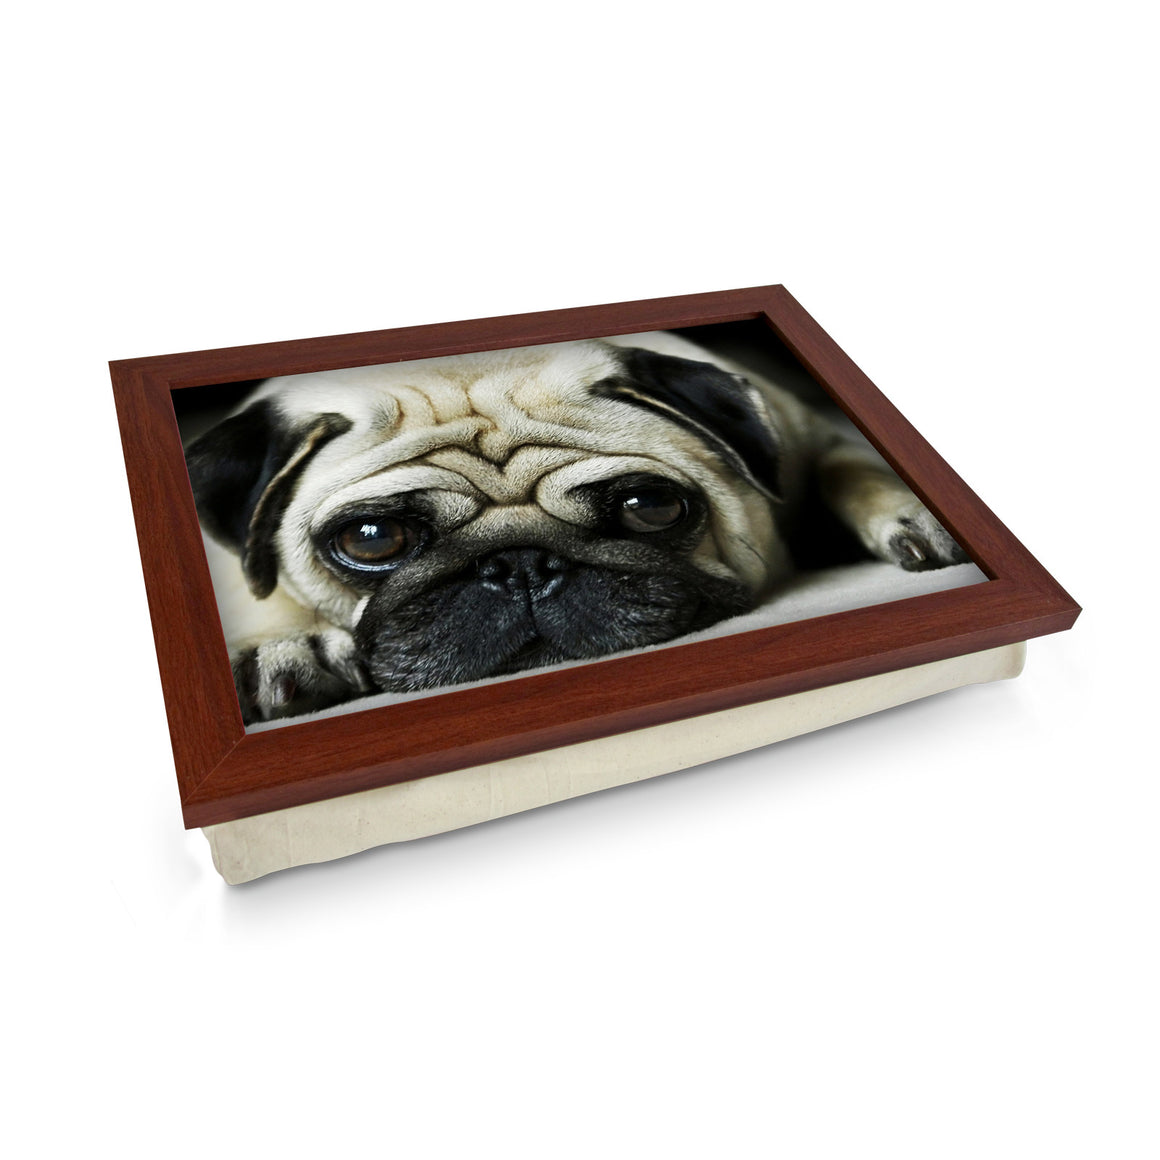 Pug Dog Laying Down Lap Tray - L0418